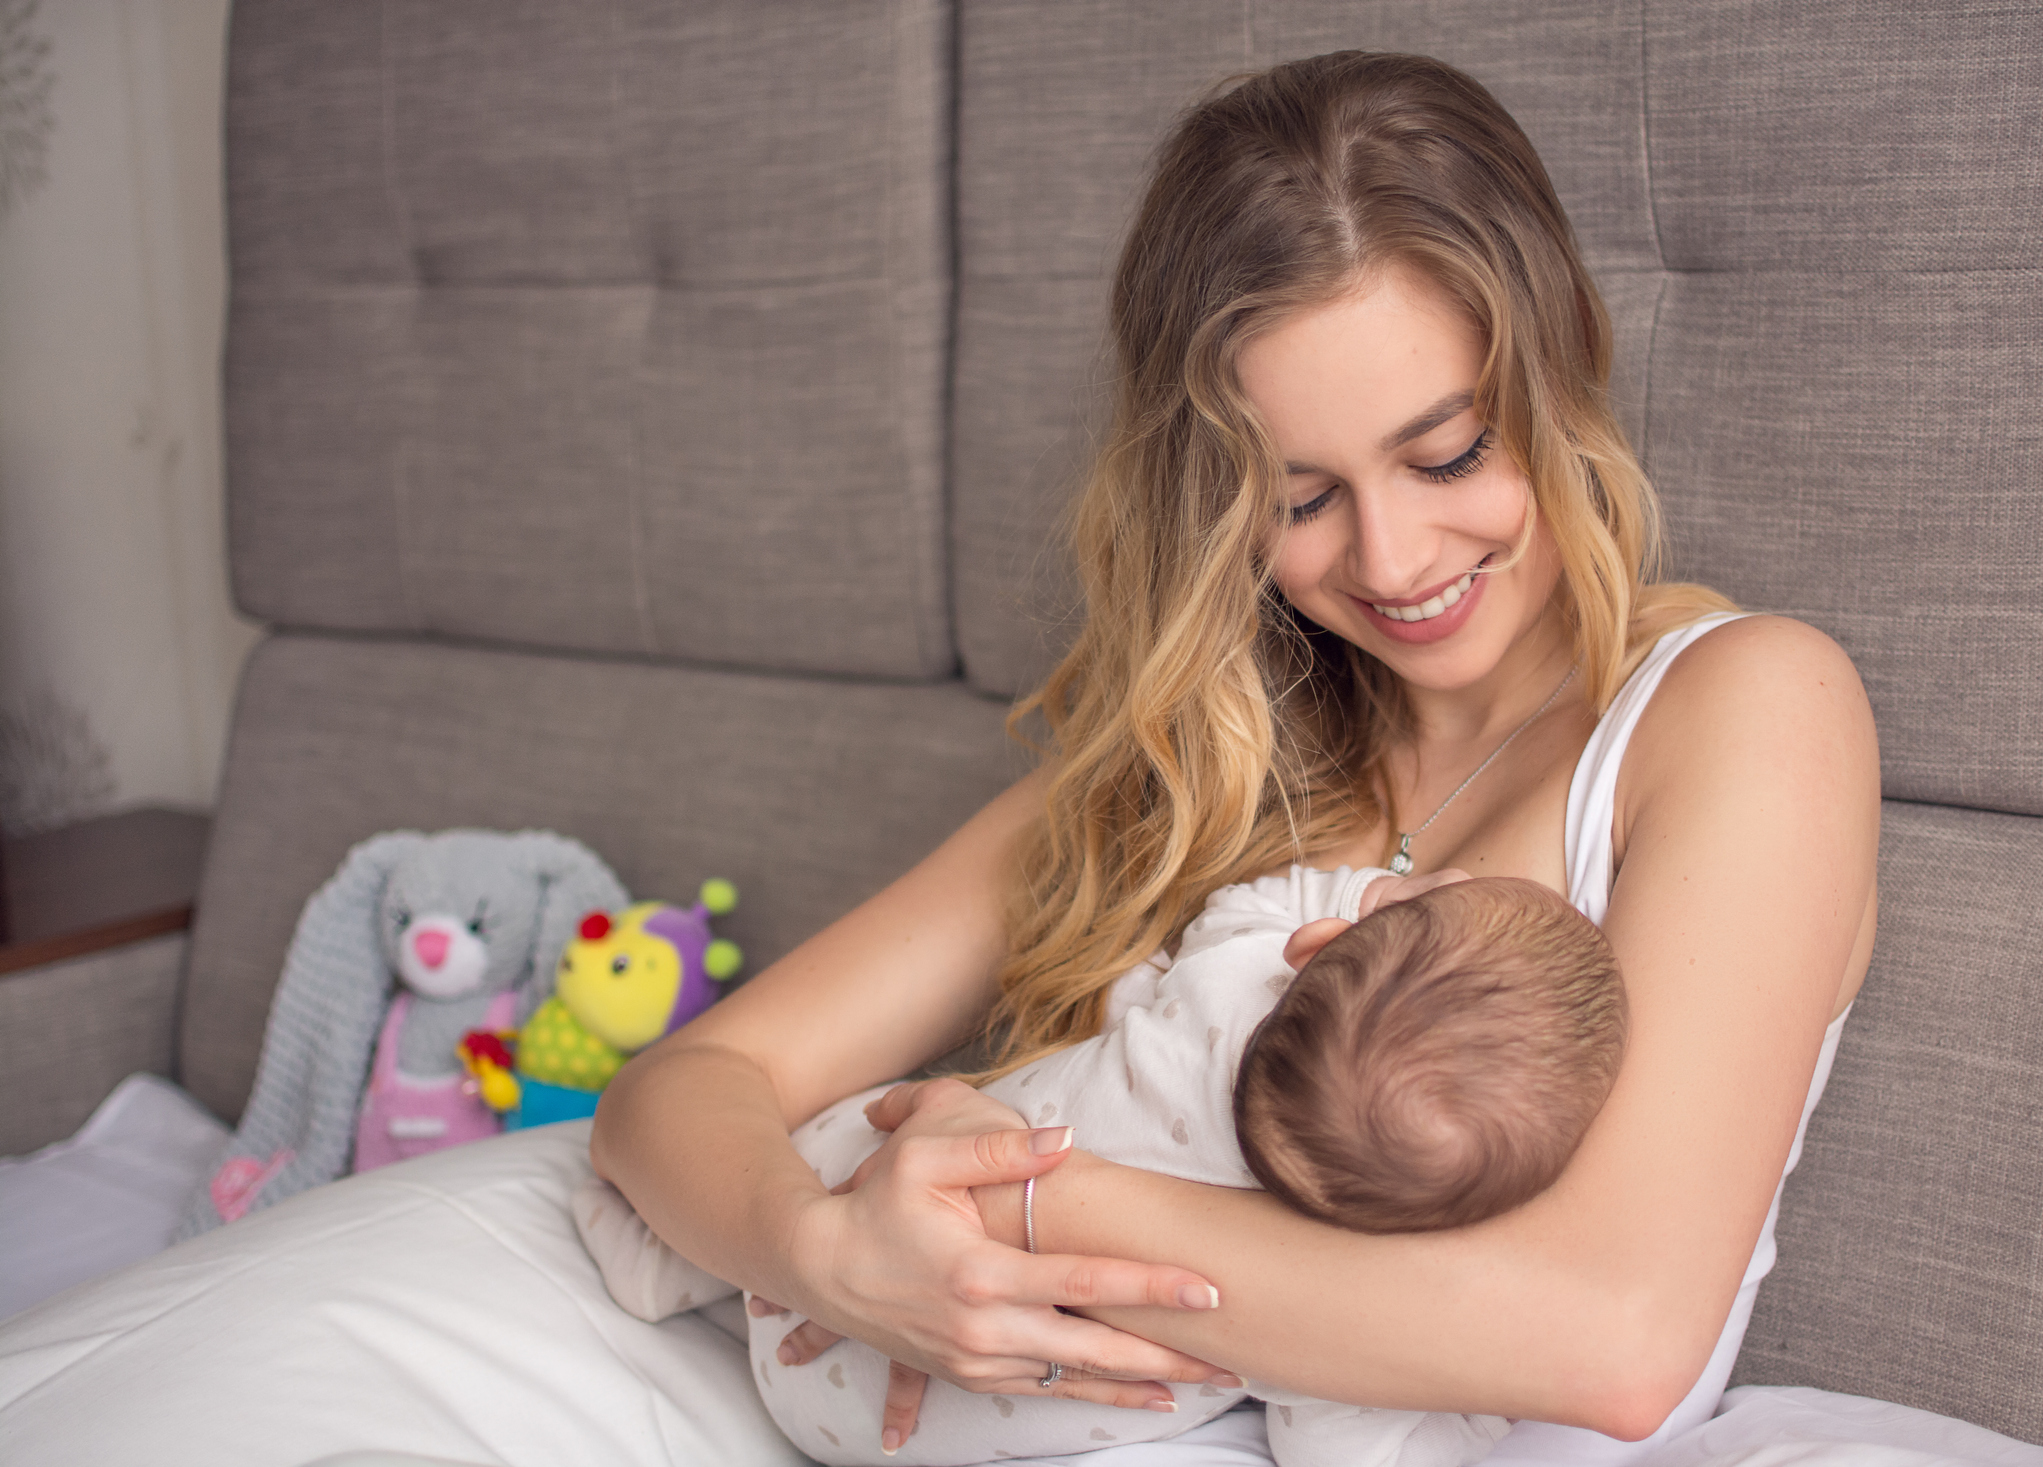 Young woman breastfeeds a newborn baby while she sits smiling.